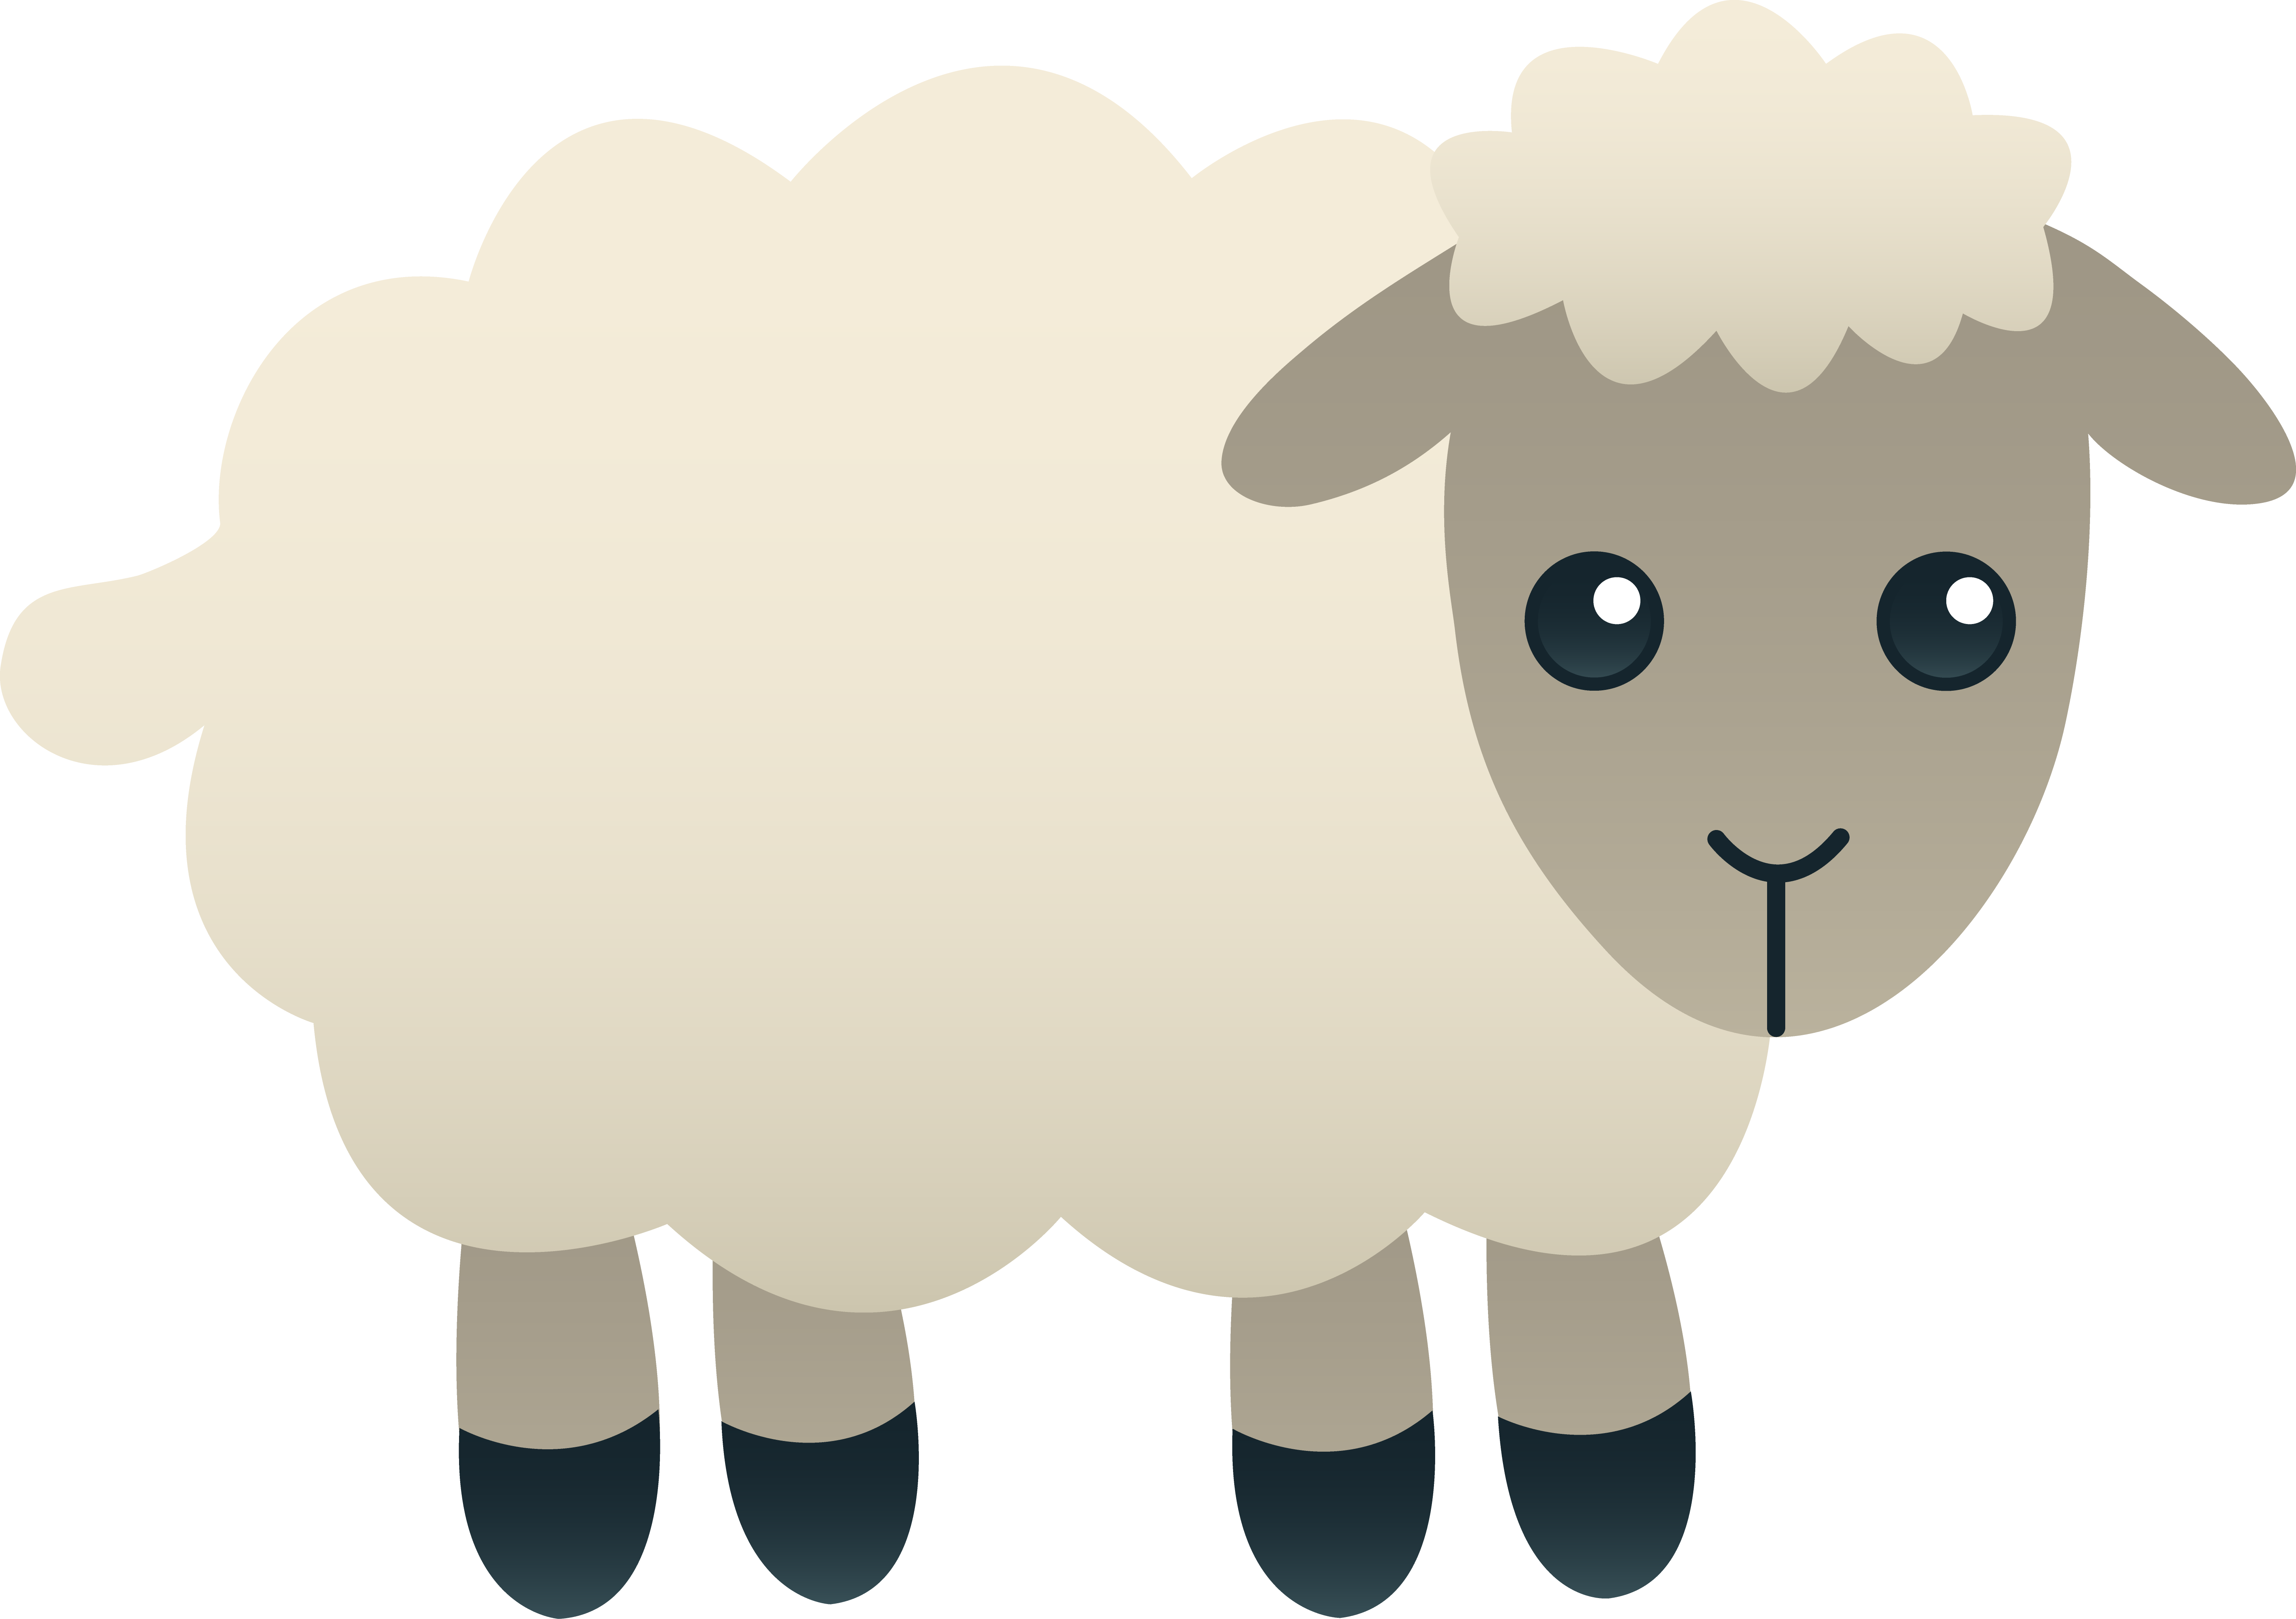 svg royalty free stock Beard clipart baby shower. Fluffy white sheep aiti